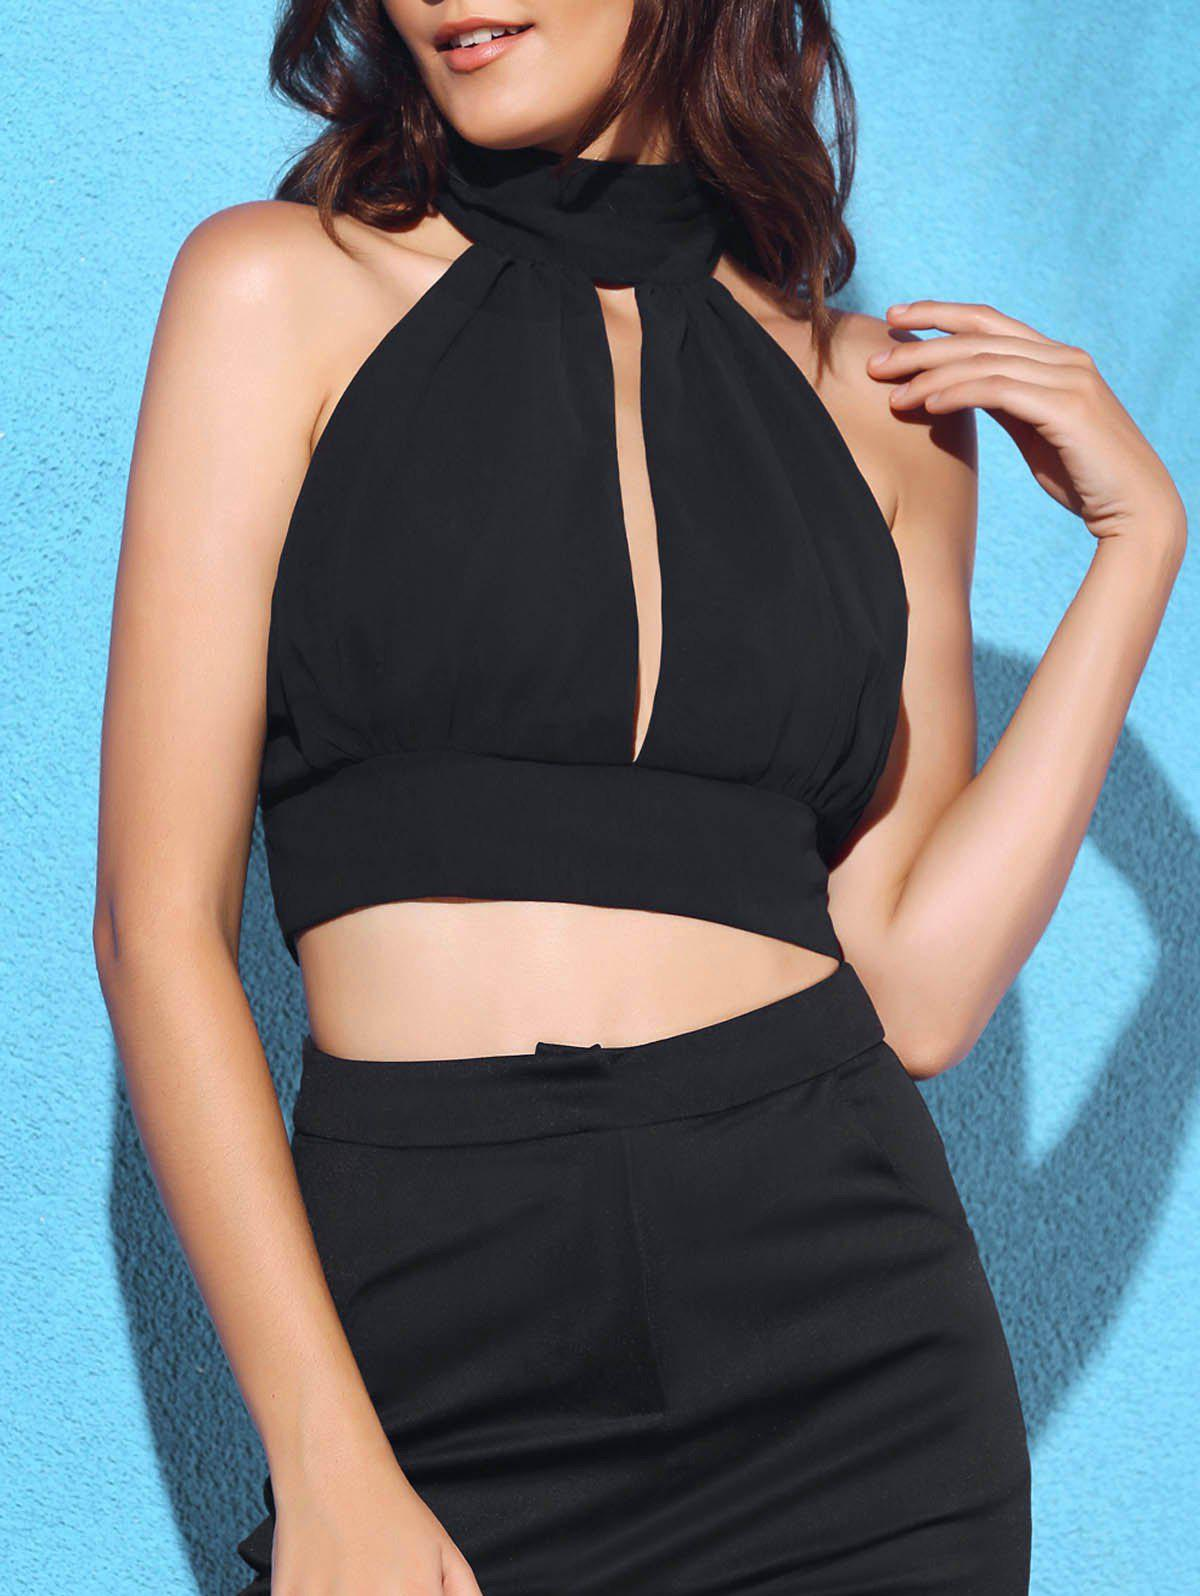 Chic Turtleneck Sleeveless Solid Color Backless Lace Spliced Women's Crop Top - BLACK S